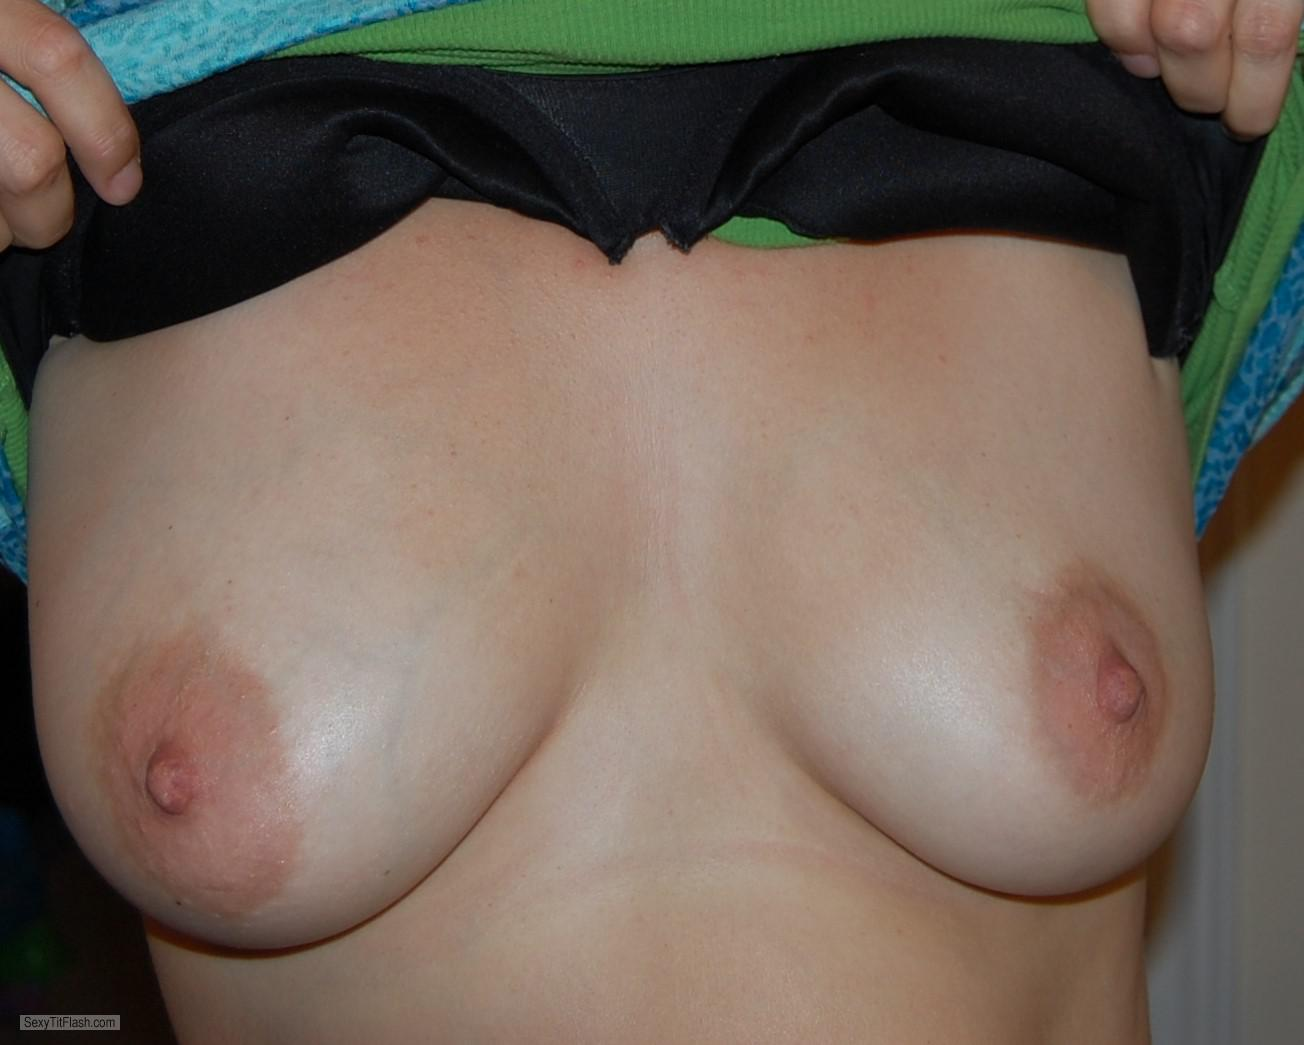 Tit Flash: My Small Tits - Pcuser69 from United Kingdom